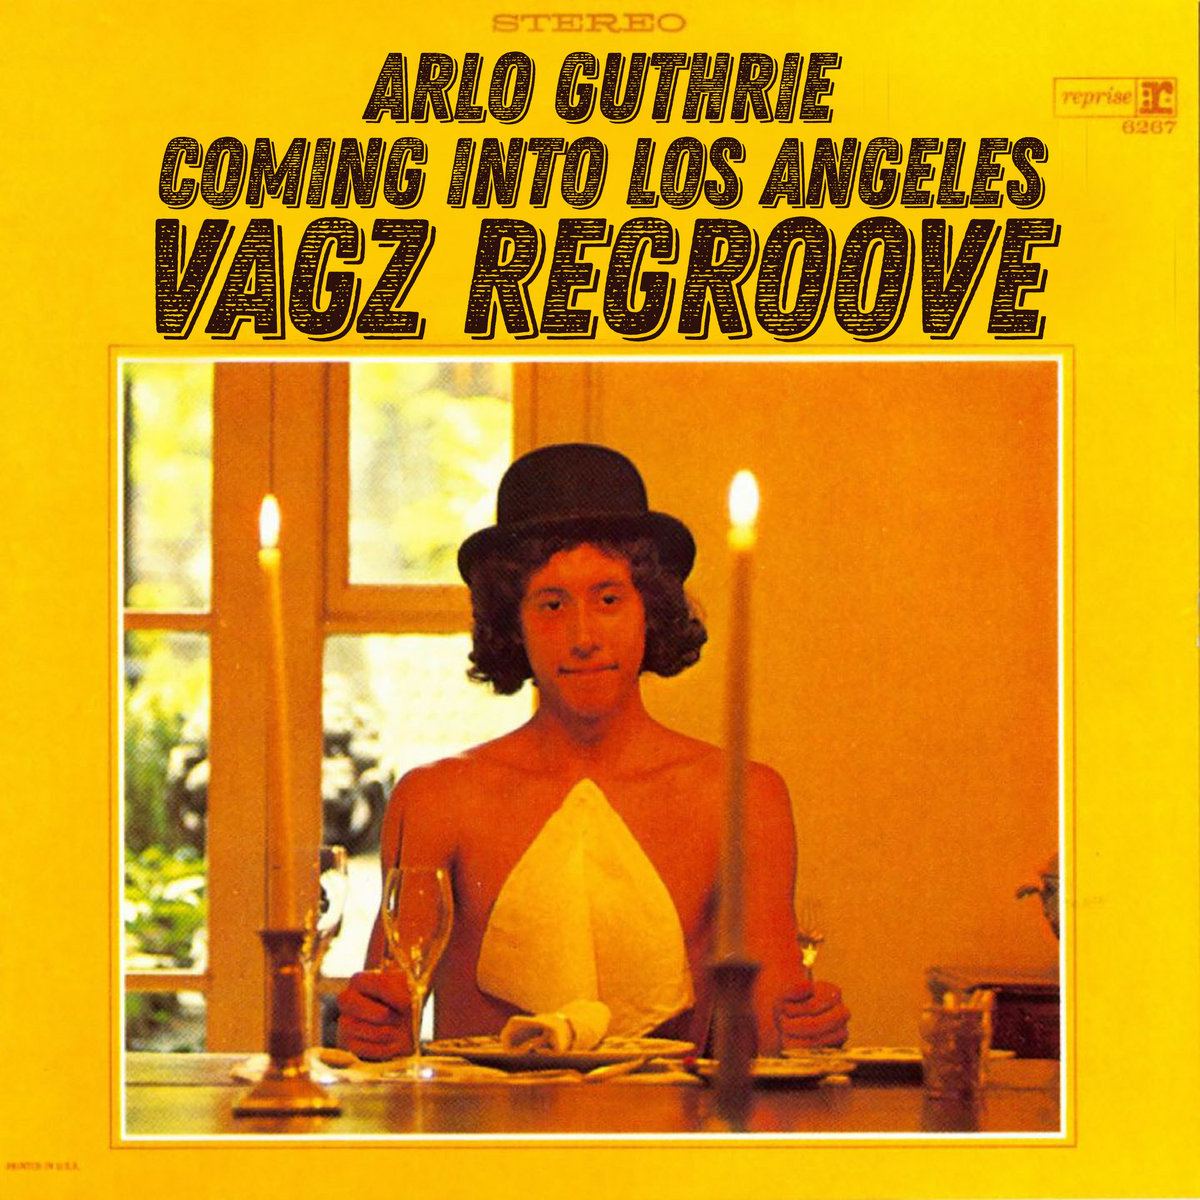 arlo guthrie coming into los angeles mp3